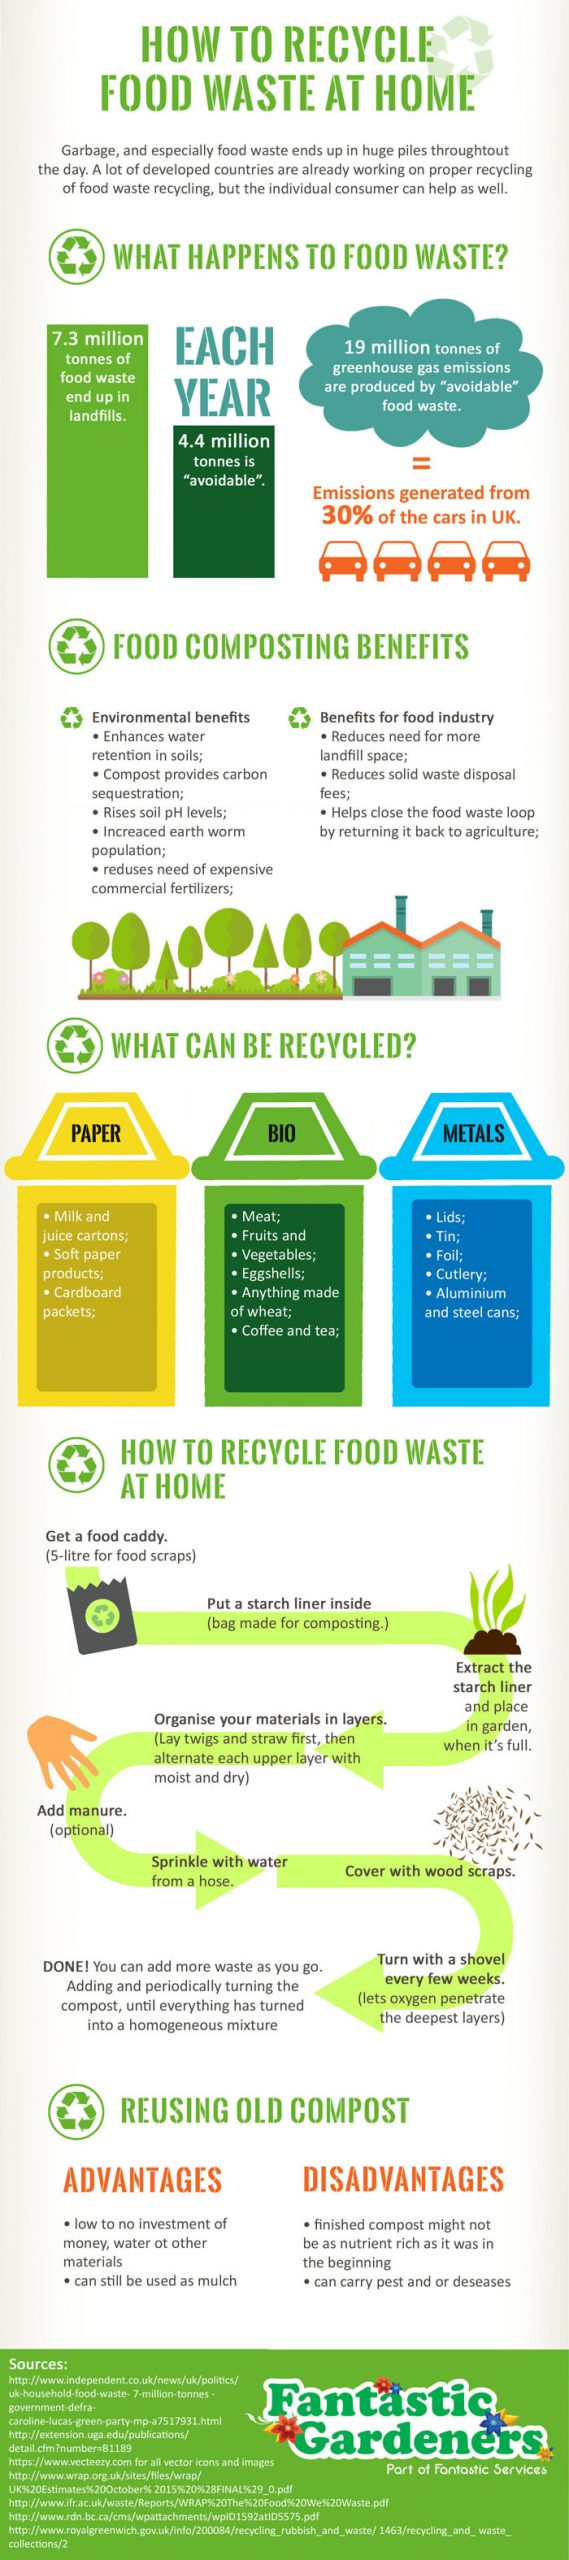 7 Most effective tactics for reducing   waste at home